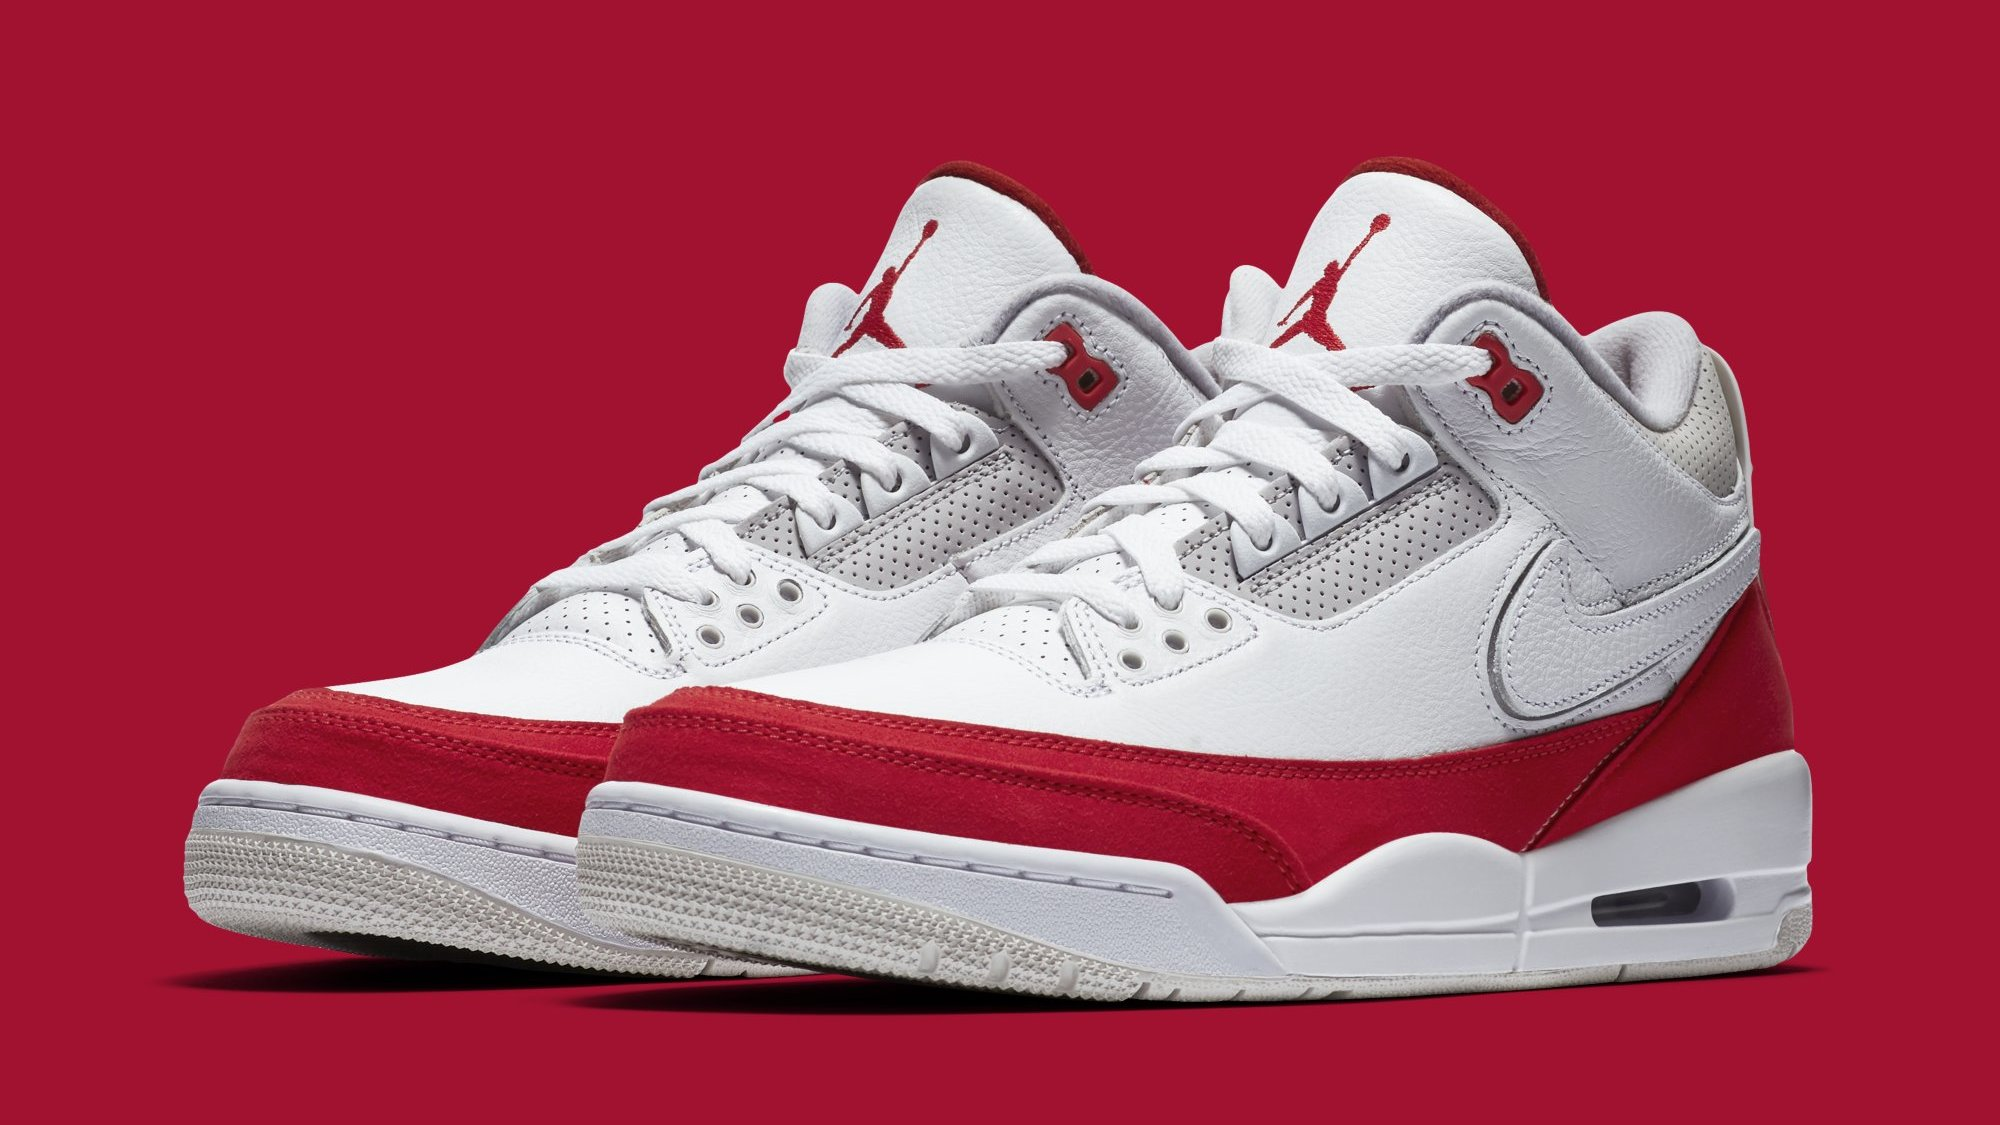 Air Jordan 3 TH SP 'Katrina' WhiteUniversity Red Neutral